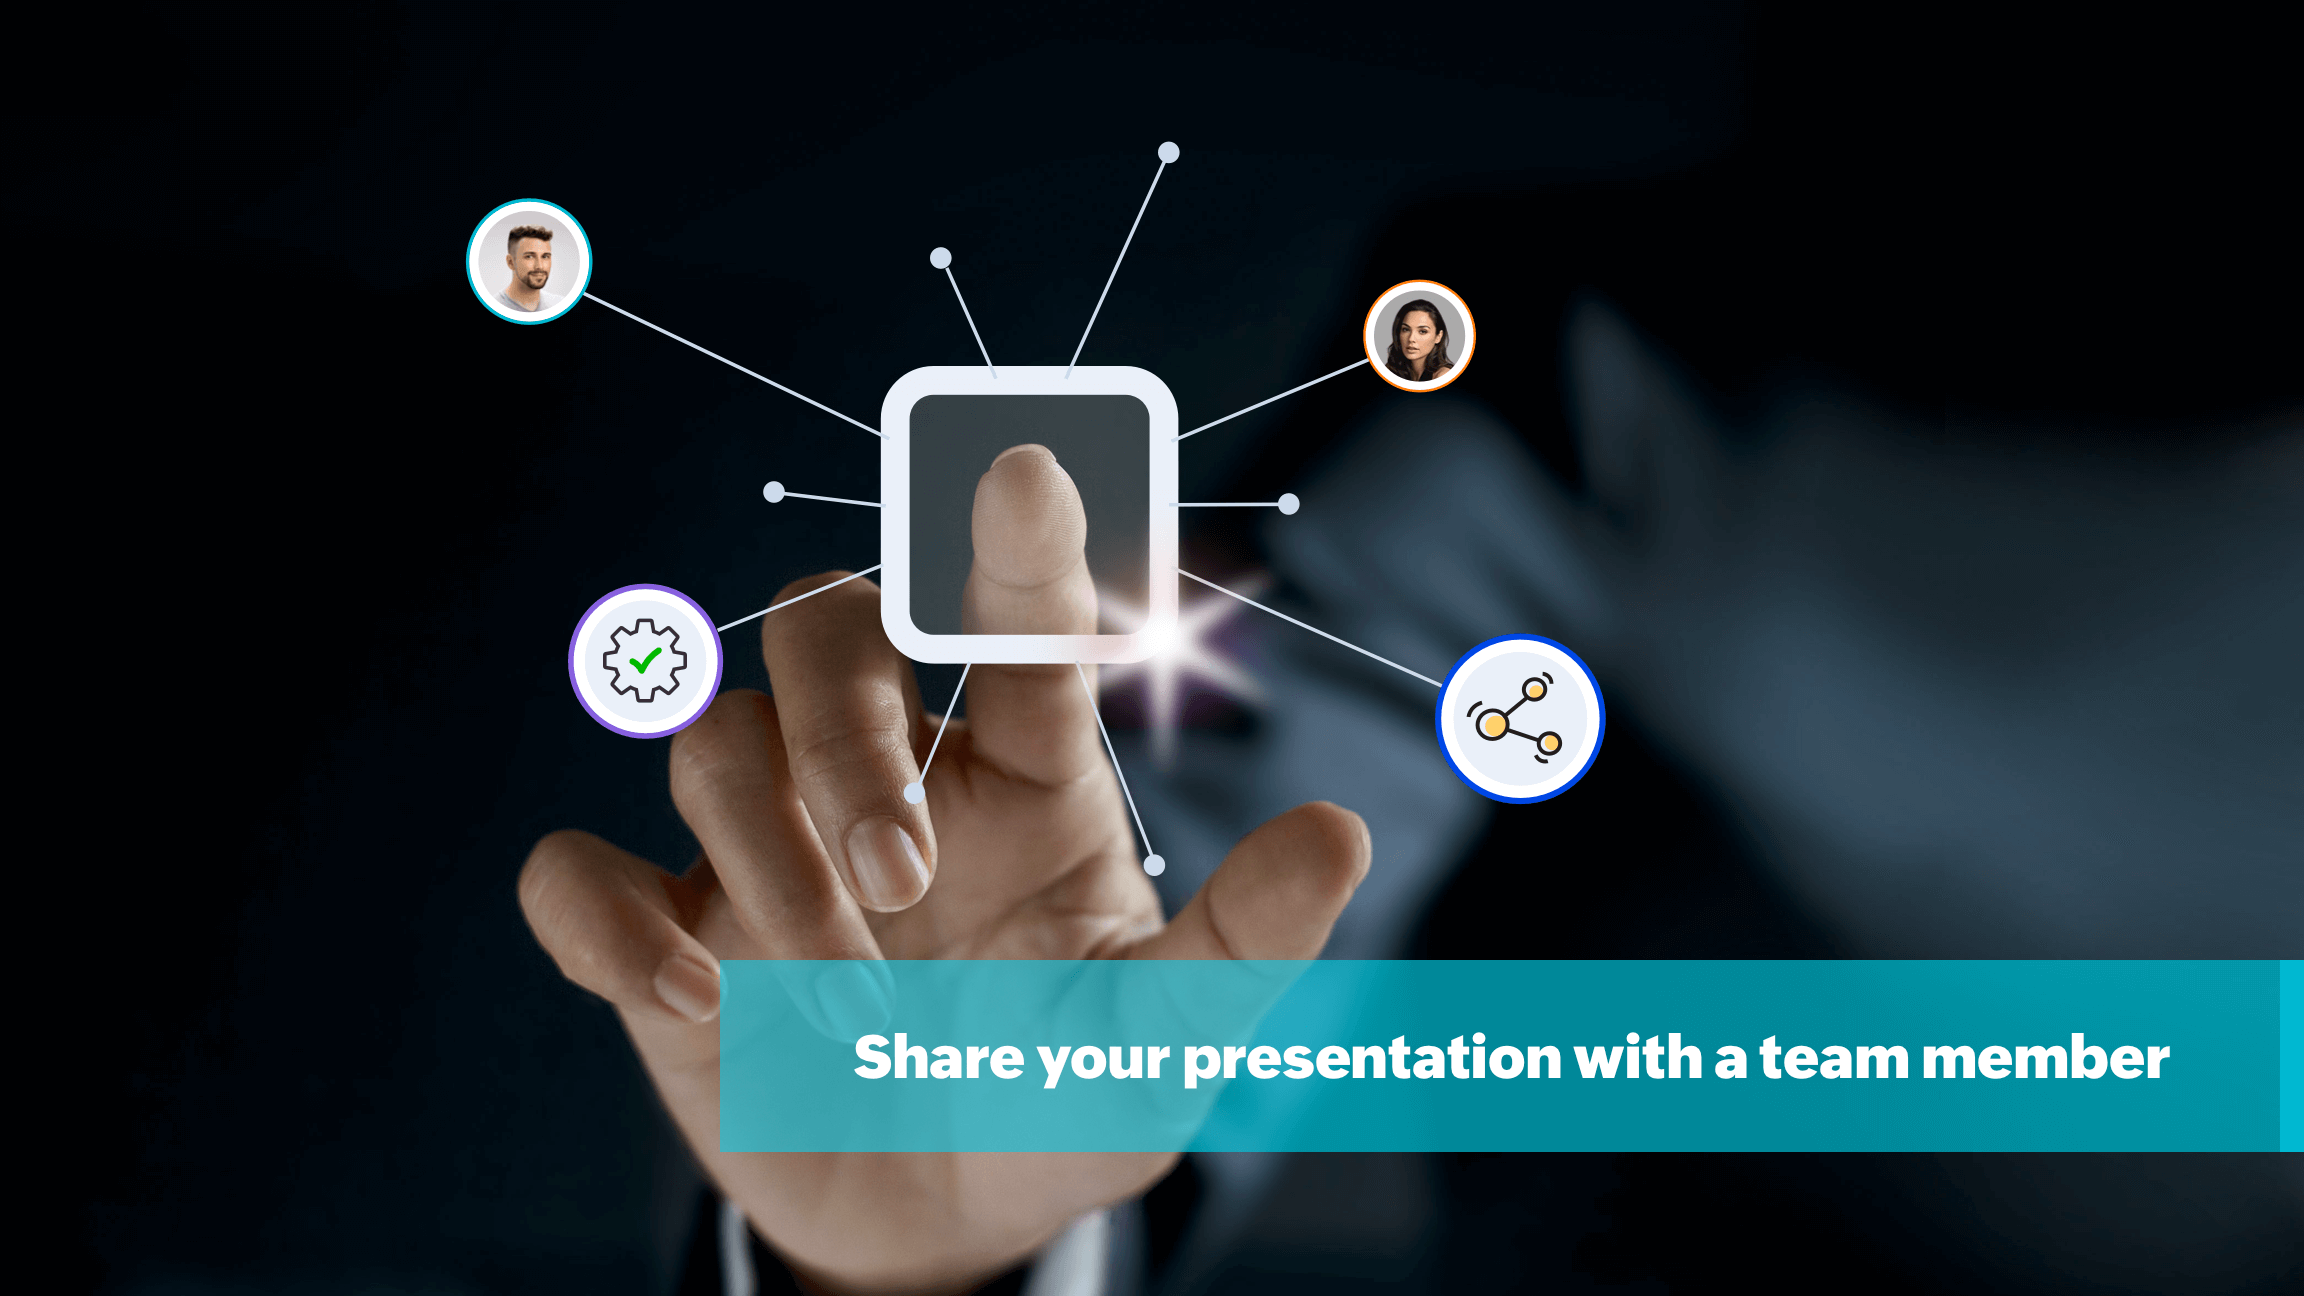 Share access to your presentation with a team member